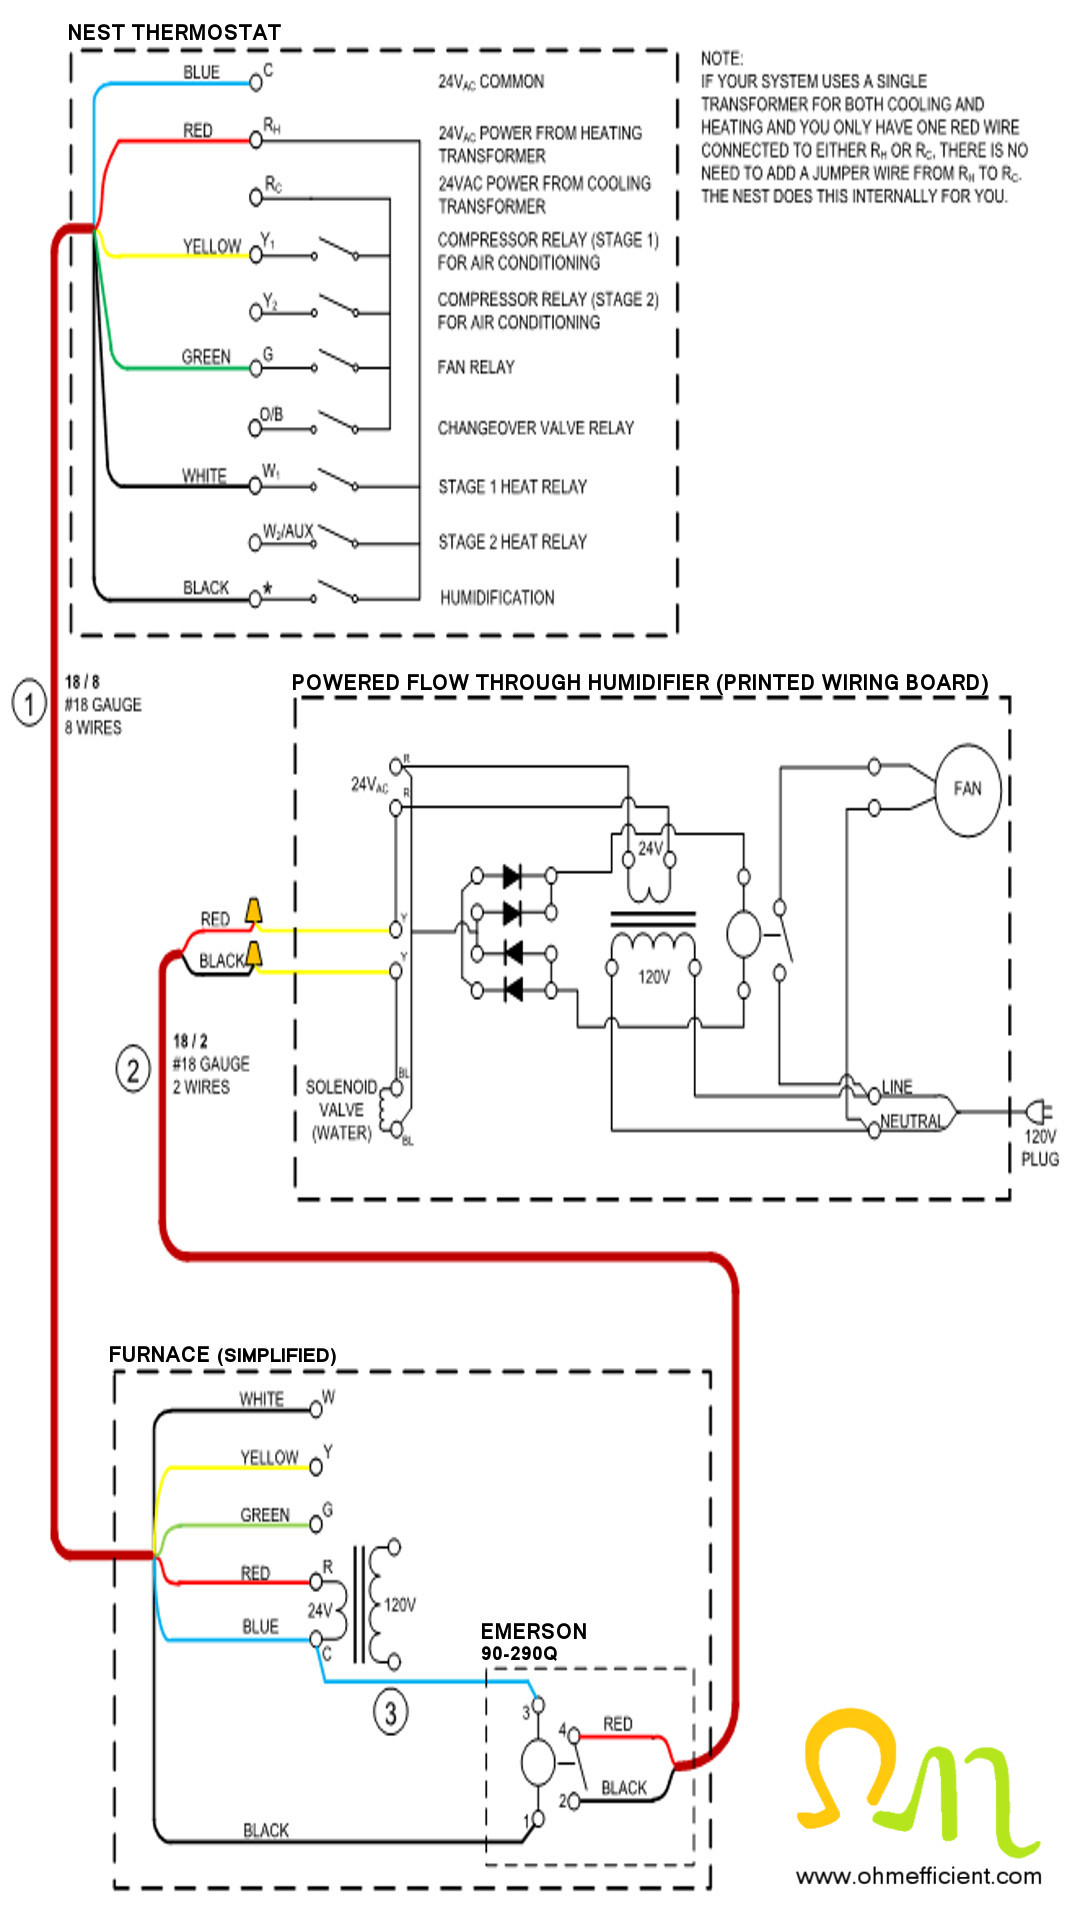 How To Connect & Setup A Nest Thermostat To Function As A Humidistat - Nest Humidifier Wiring Diagram No C Wire